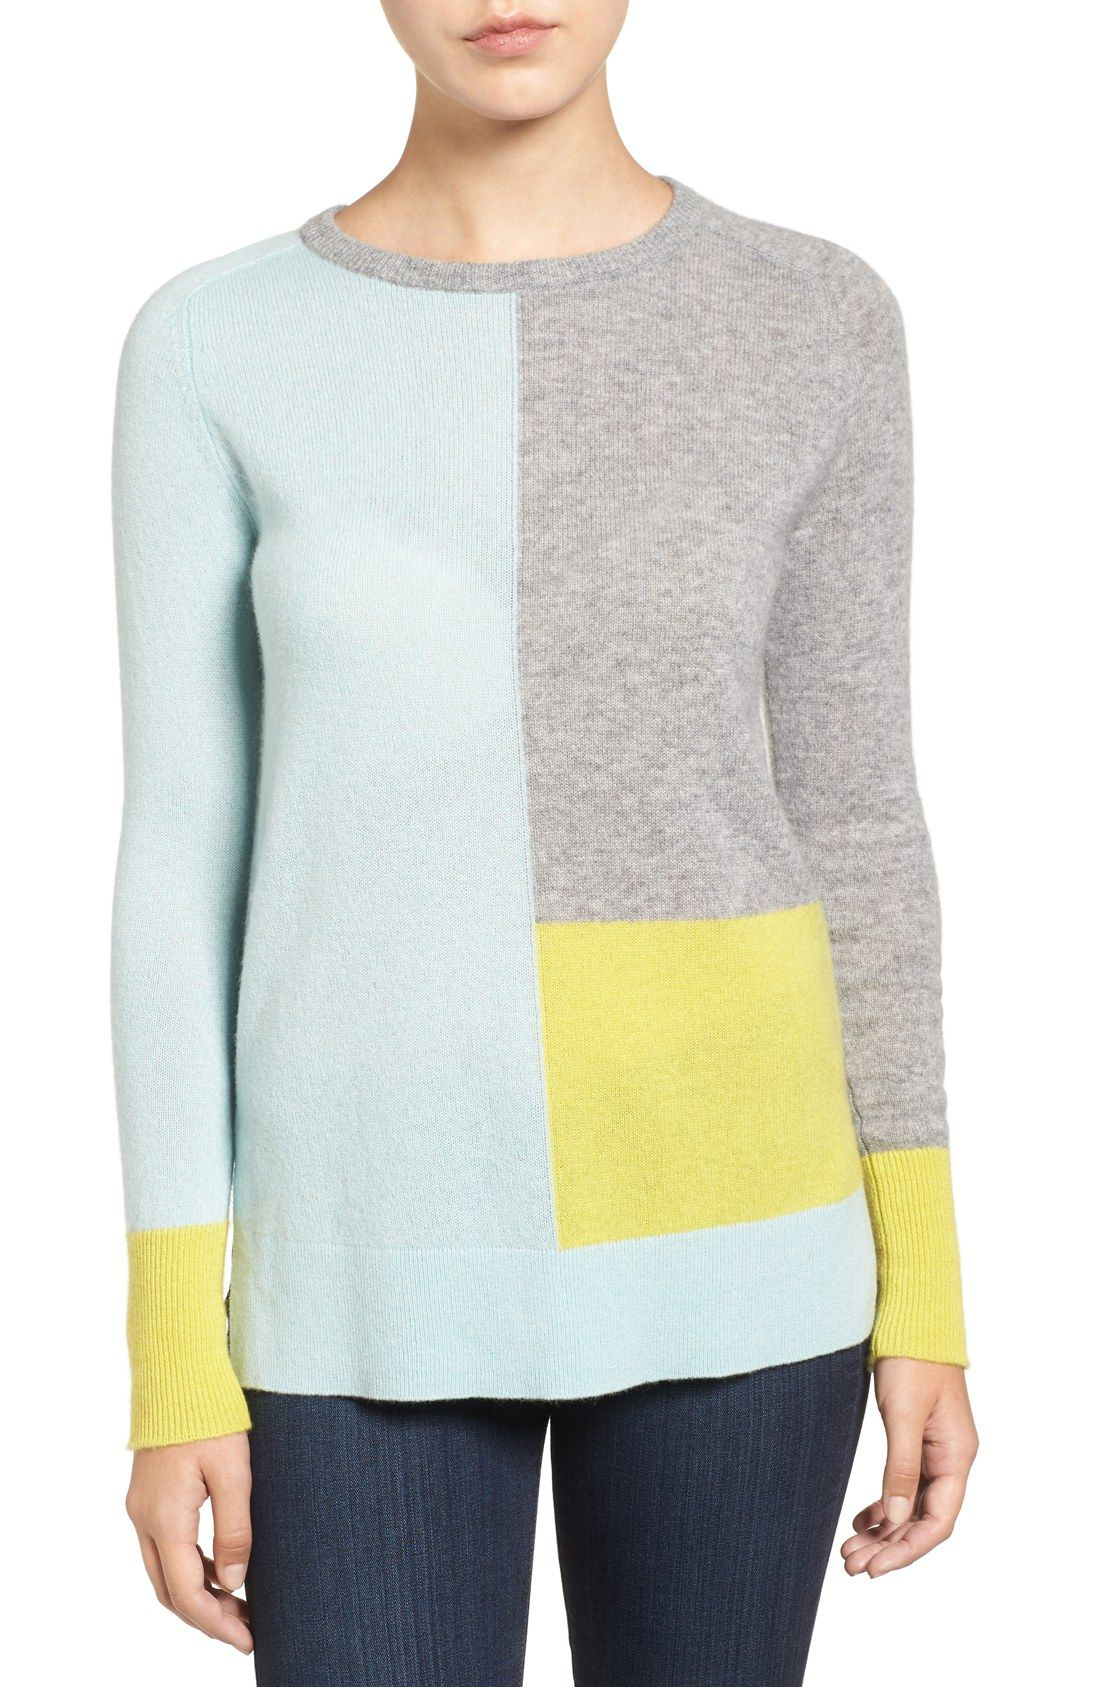 Patterned Cashmere Sweater | Inspired by Mindy Lahiri (not to be ...